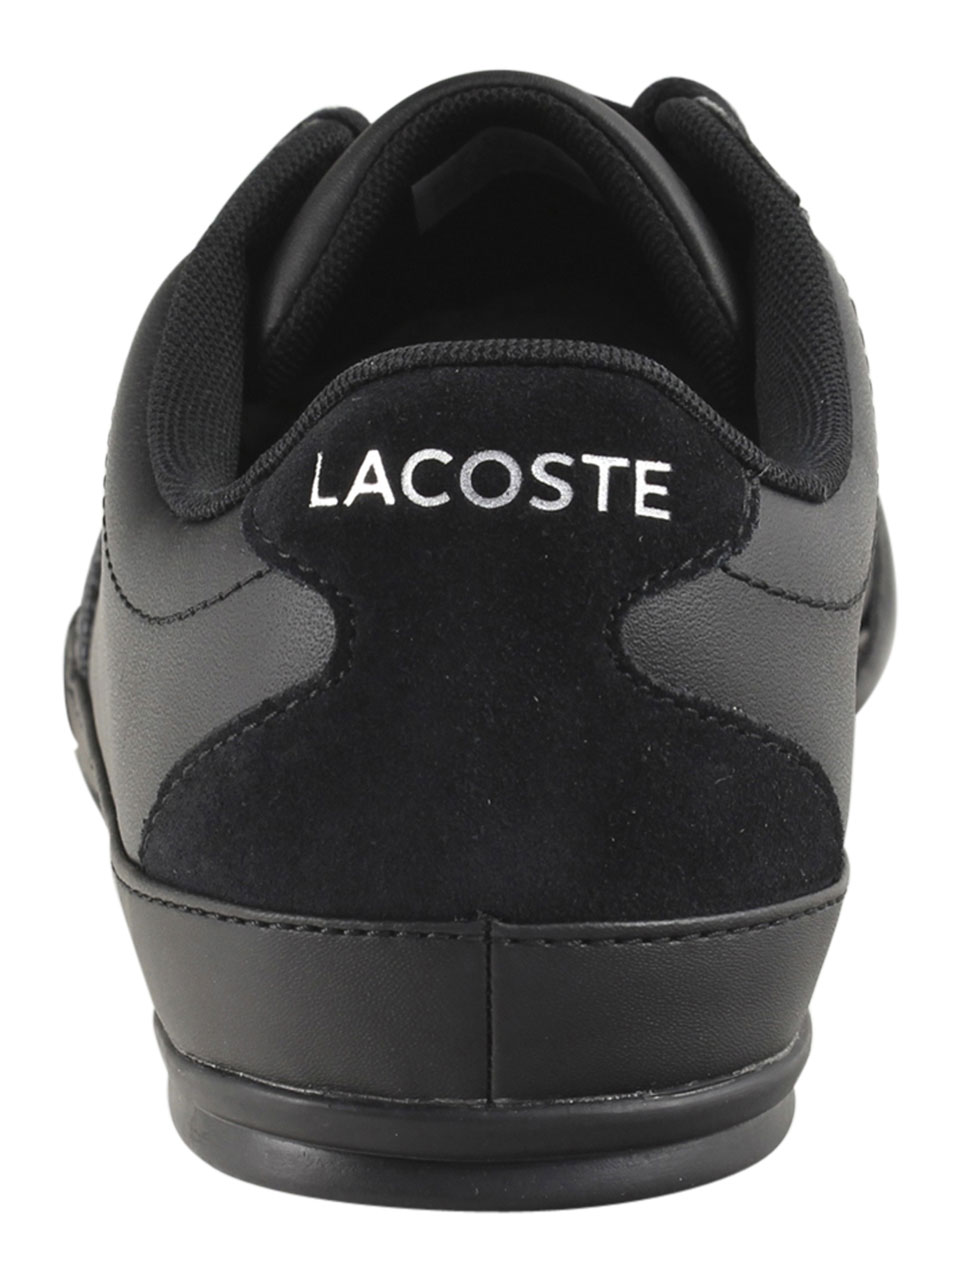 Lacoste-Men-039-s-Misano-Sport-118-Sneakers-Shoes thumbnail 11